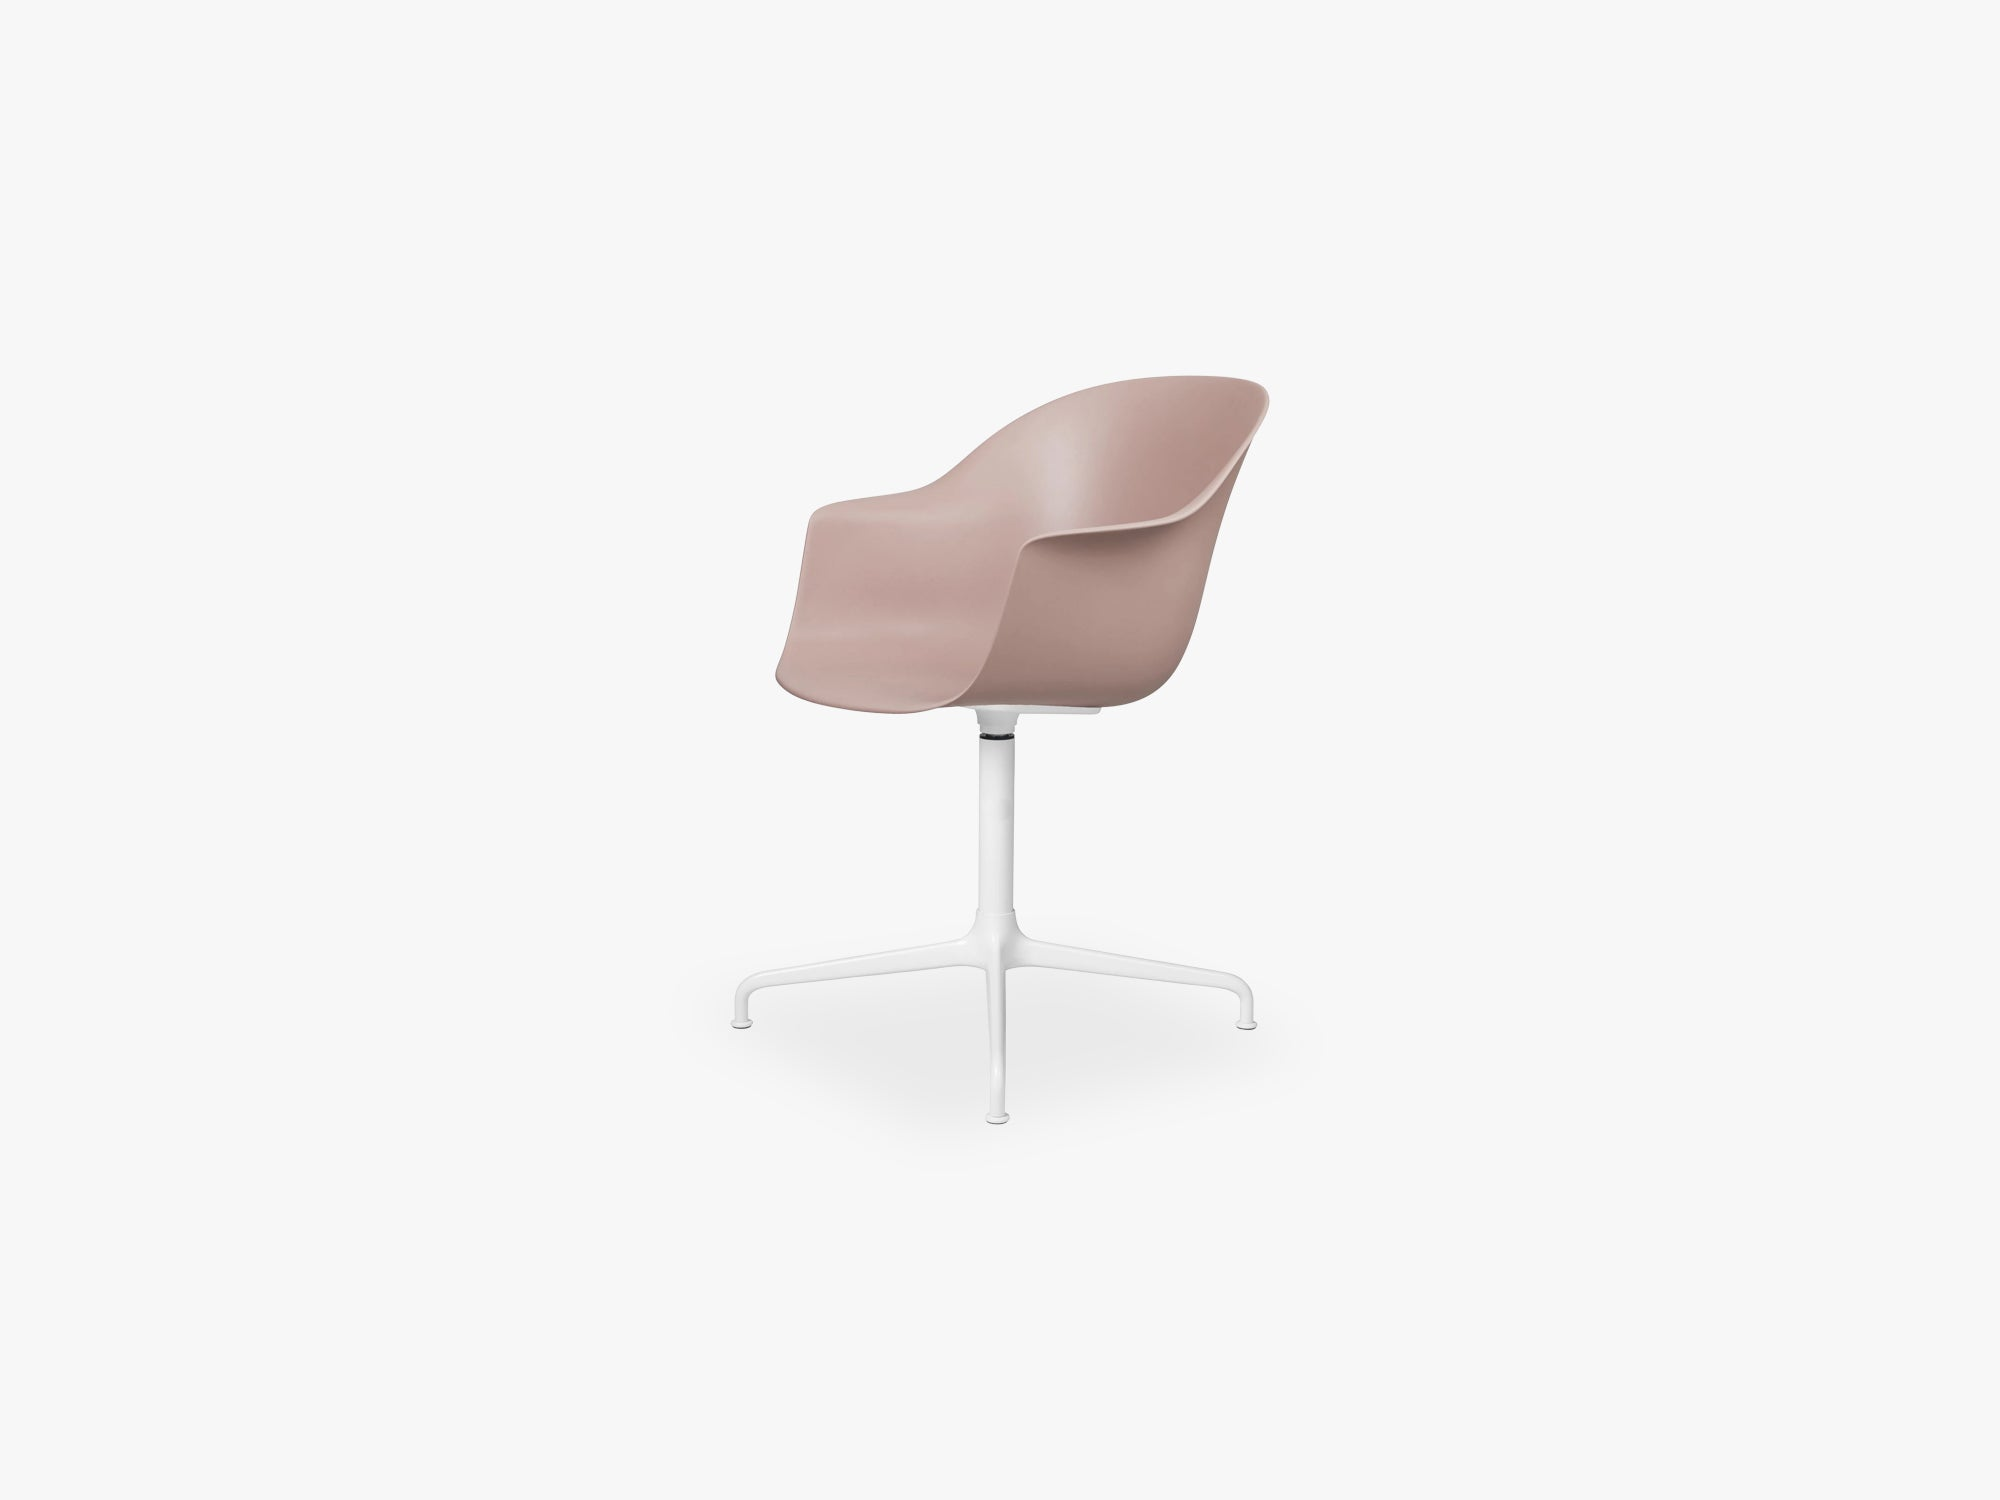 Bat Meeting Chair - Skal m 4-star base - Soft White Semi Matt Base, Sweet Pink fra GUBI